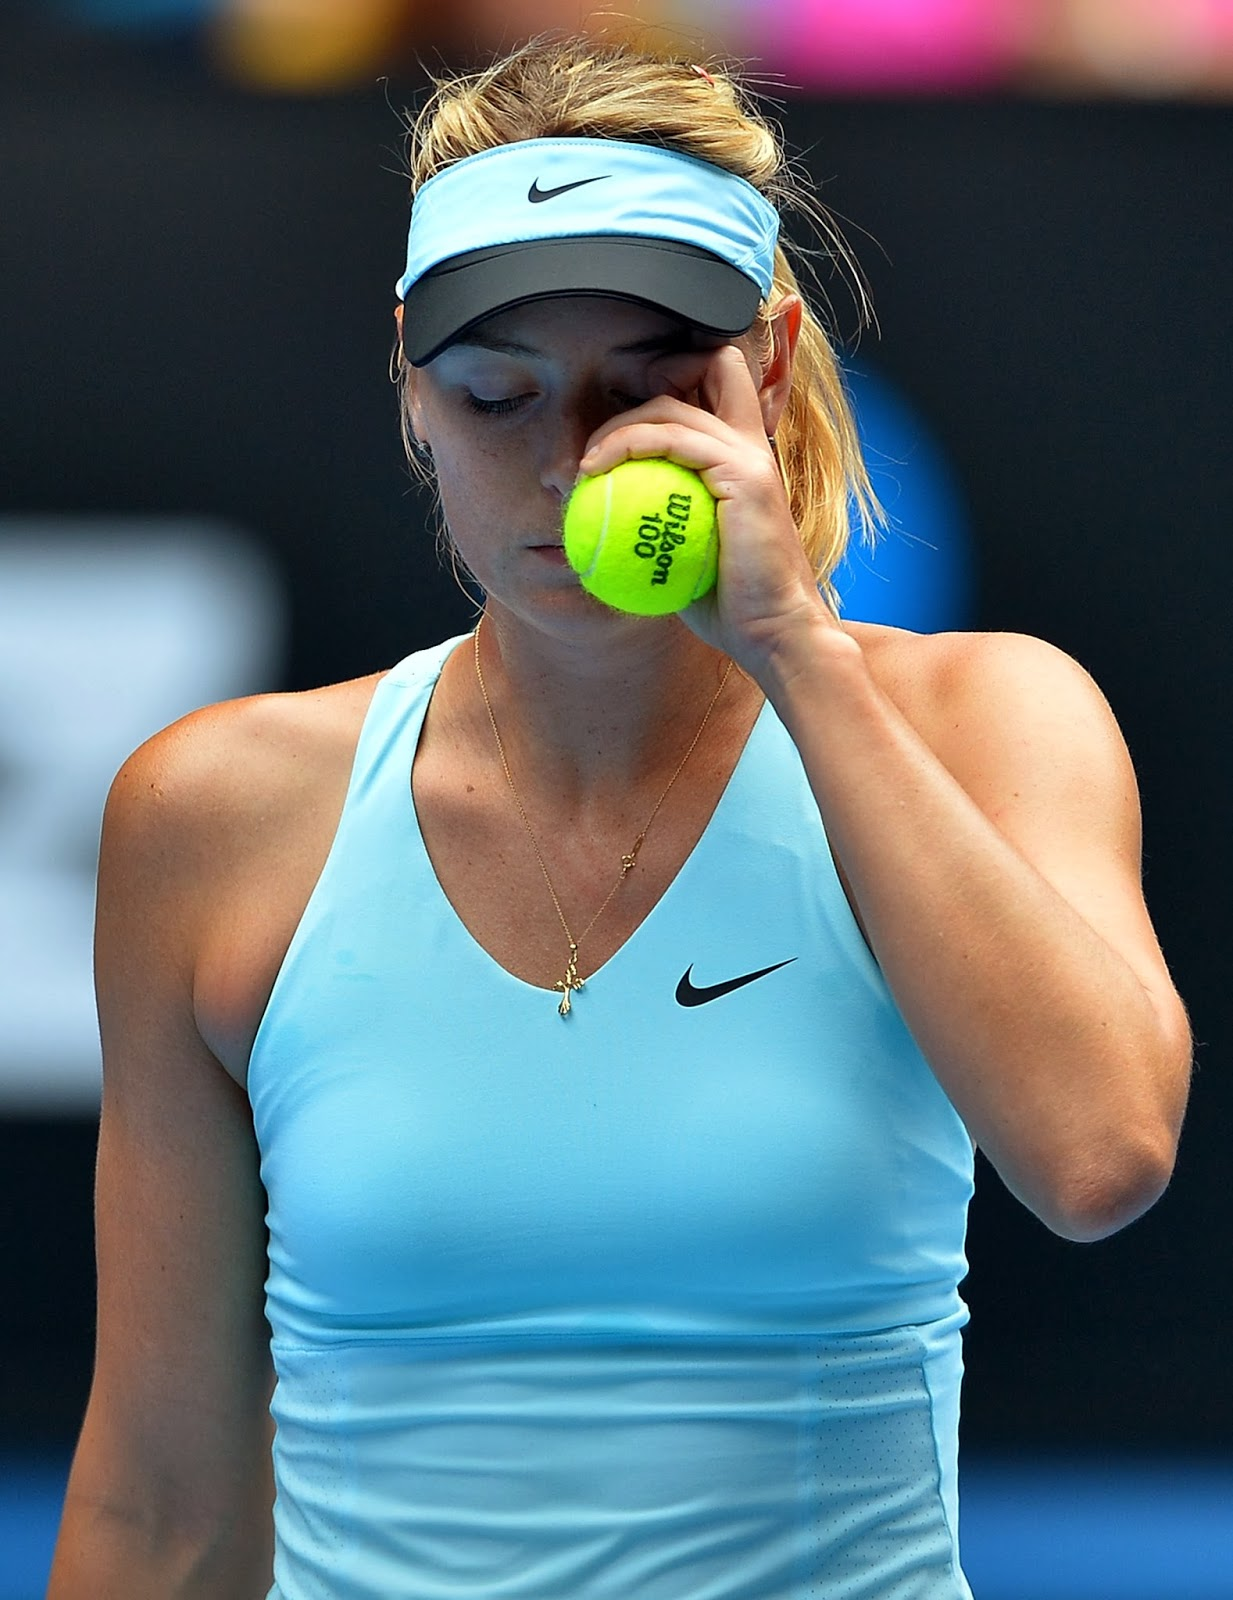 Slovakia, Dominika, Sports, Tennis, Russia, Maria Sharapova, Women, Singles, Match, Australian Open, 2014, Tournament, Melbourne, Cibulkova, Australia,